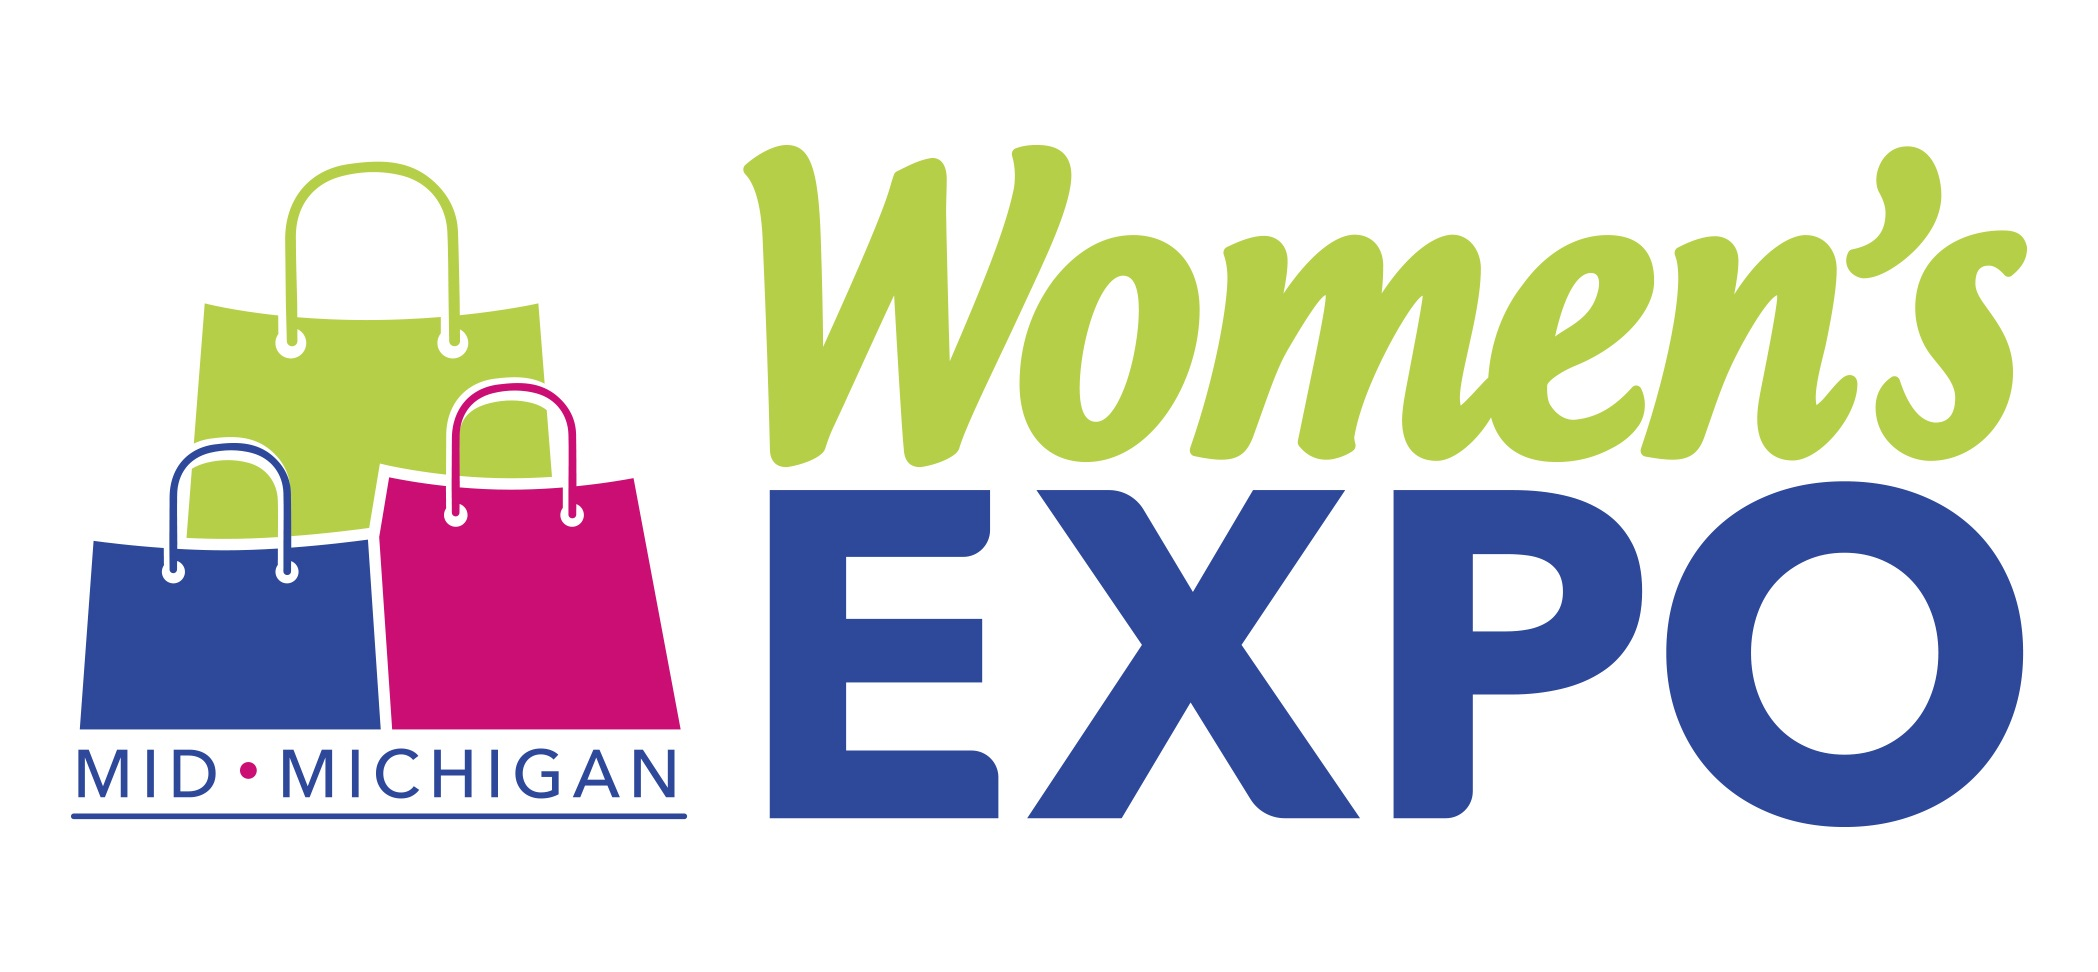 Image for 2020 Mid-Michigan Women's Expo February 7-9, 2020